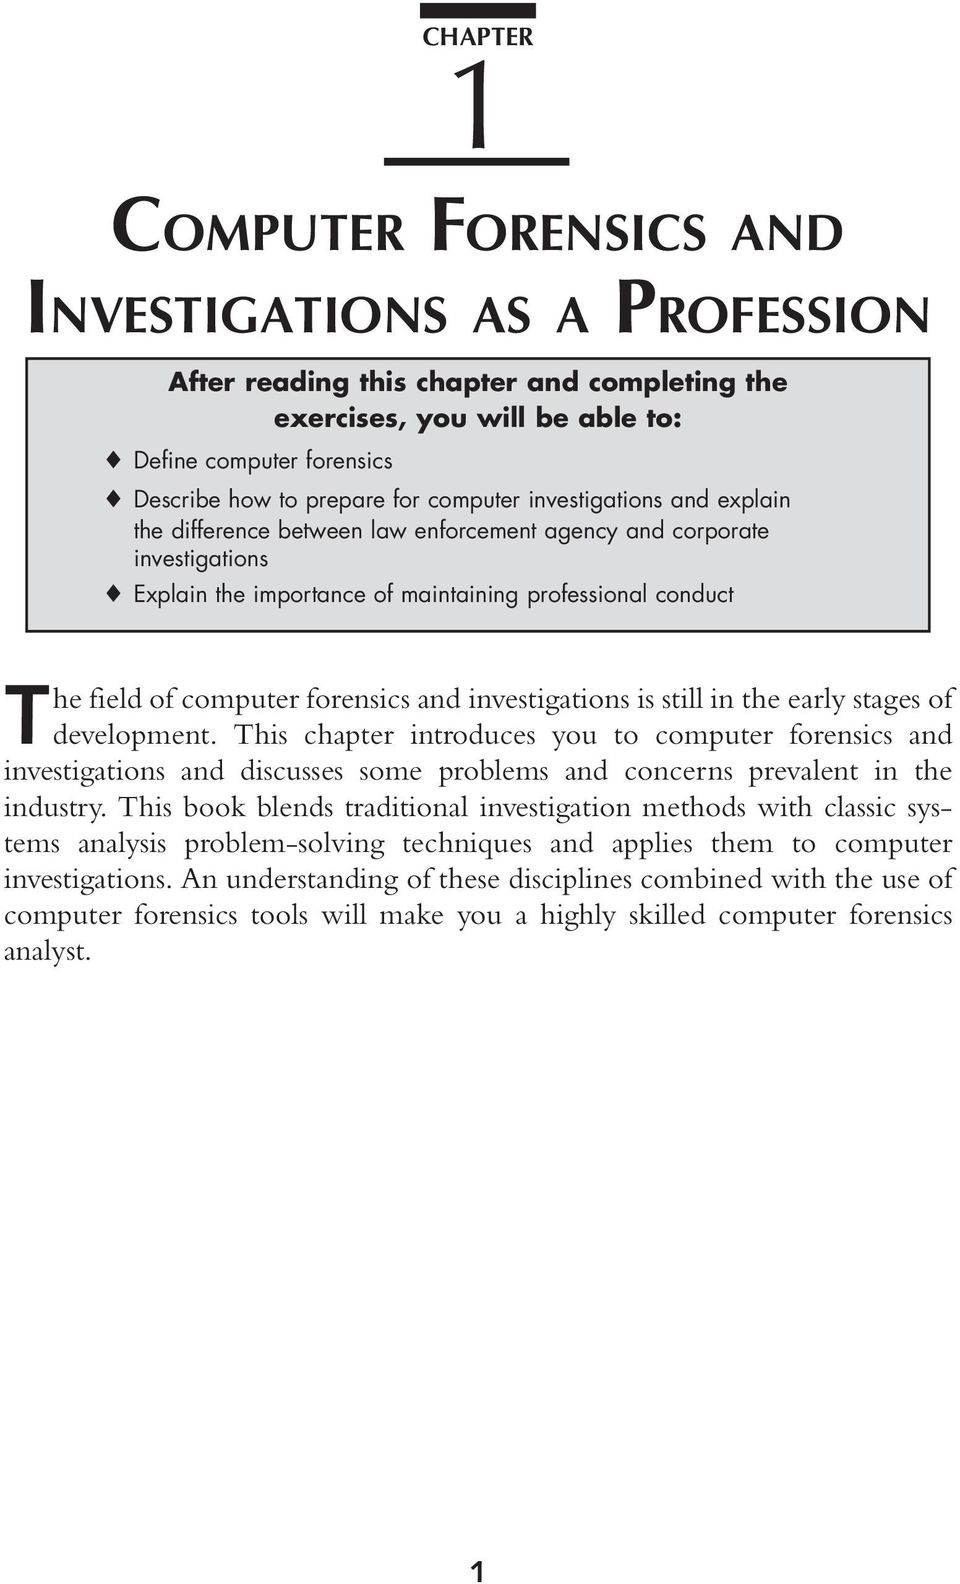 forensics and investigations is still in the early stages of development.